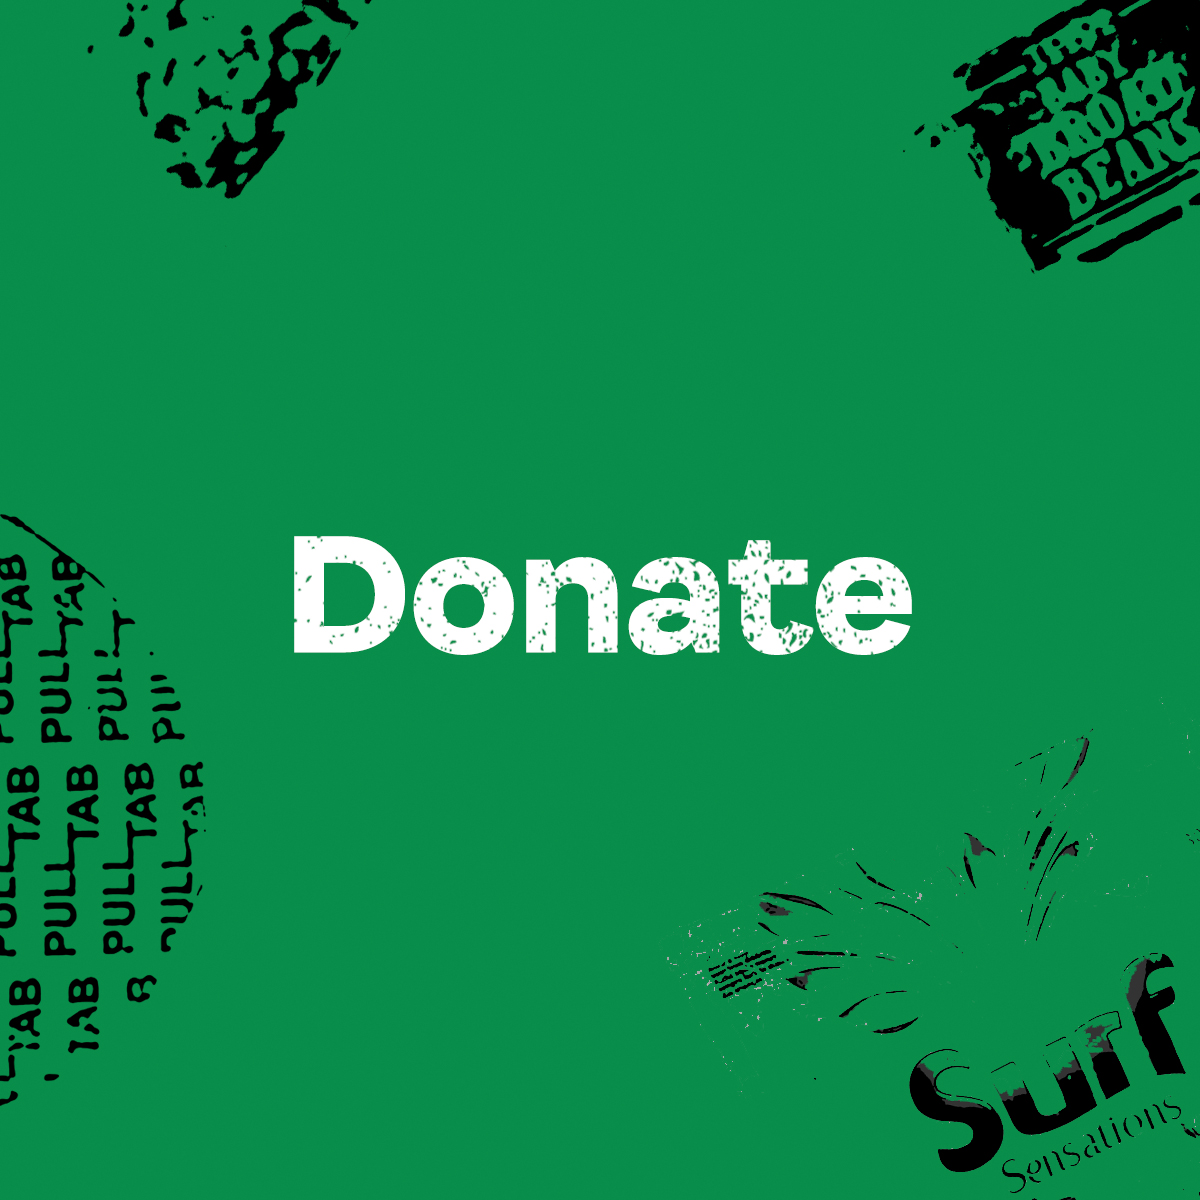 Donate - This report is 100% independent and the data collection, research, analysis and writing has been completed in our free time without external interests or funding.Surfers Against Sewage is supporting the release and promotion of the report and have contributed funding to the design. The report has been designed by Leap as part of their people and planet 'design for change' initiative.Julie and I have voluntarily worked on this paper for over 6 months. We would like to continue to work on providing real-time statistics and stories to improve our understanding and knowledge of where plastic goes when we throw it away.If you read this report or use the content within it, please consider making a donation. Thank you.